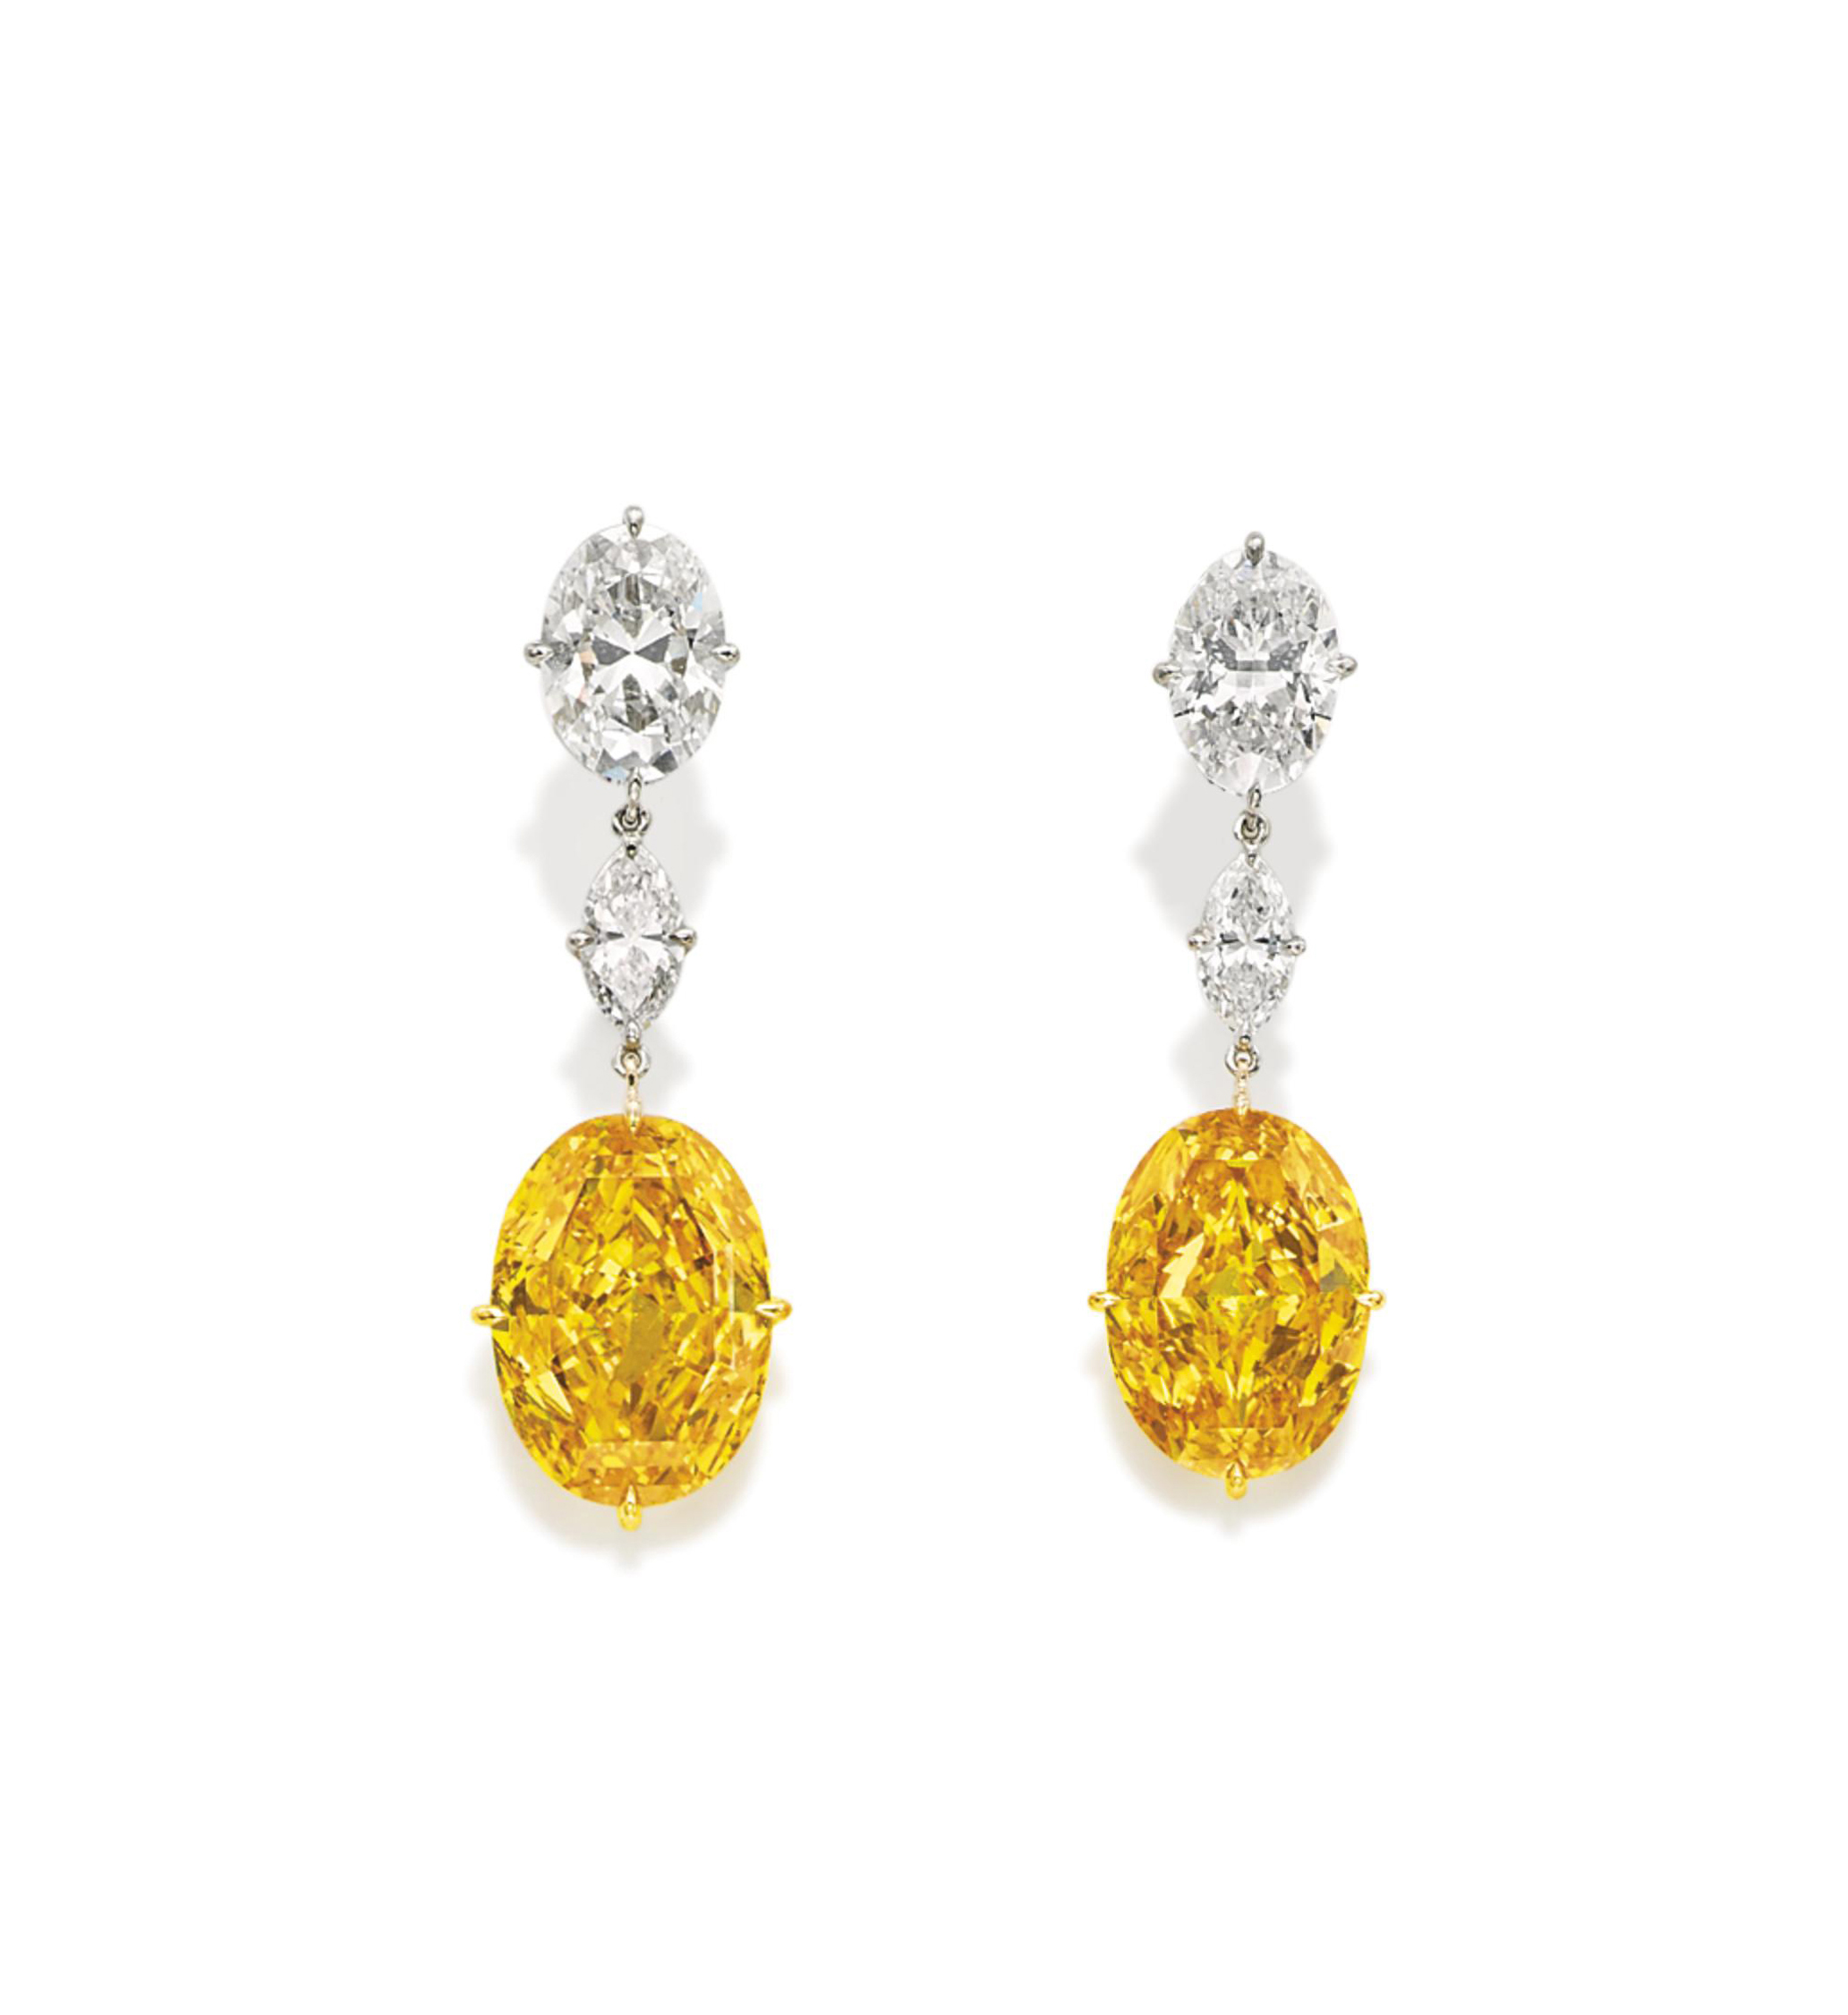 THE ORIENTAL SUNRISE A UNIQUE AND RARE PAIR OF DIAMOND AND COLOURED DIAMOND EARRINGS